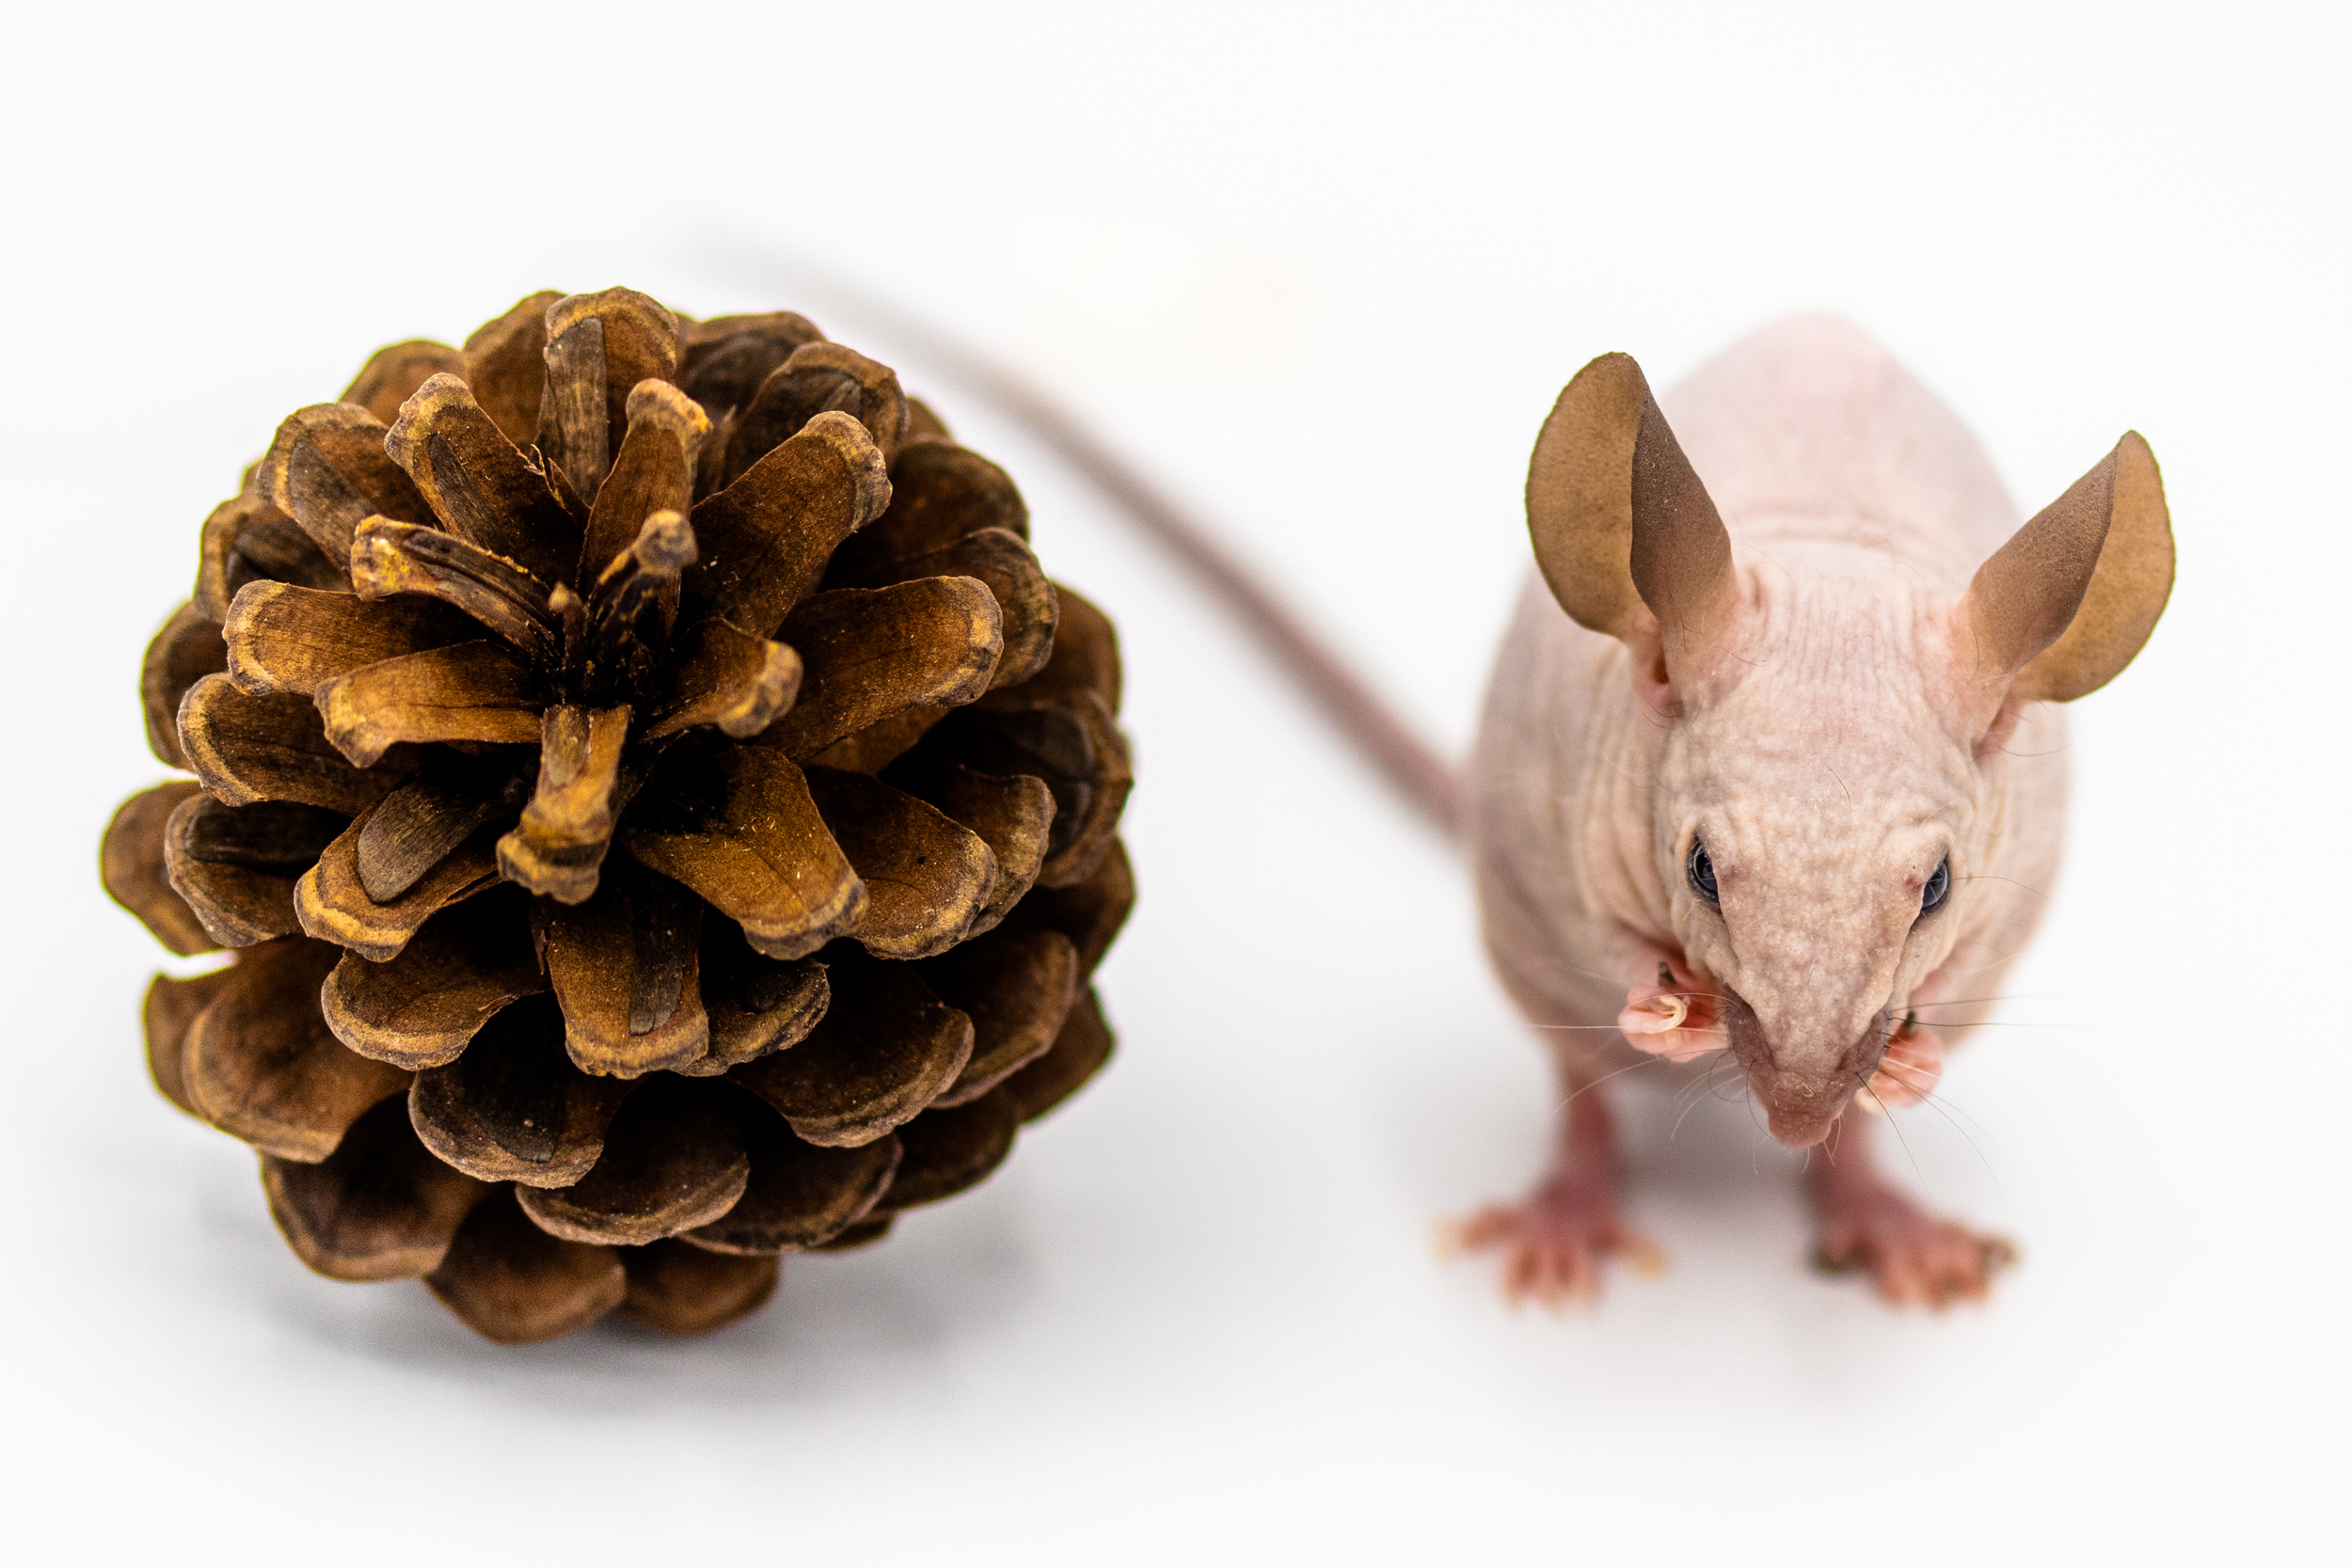 Alice the hairless mouse with pinecone